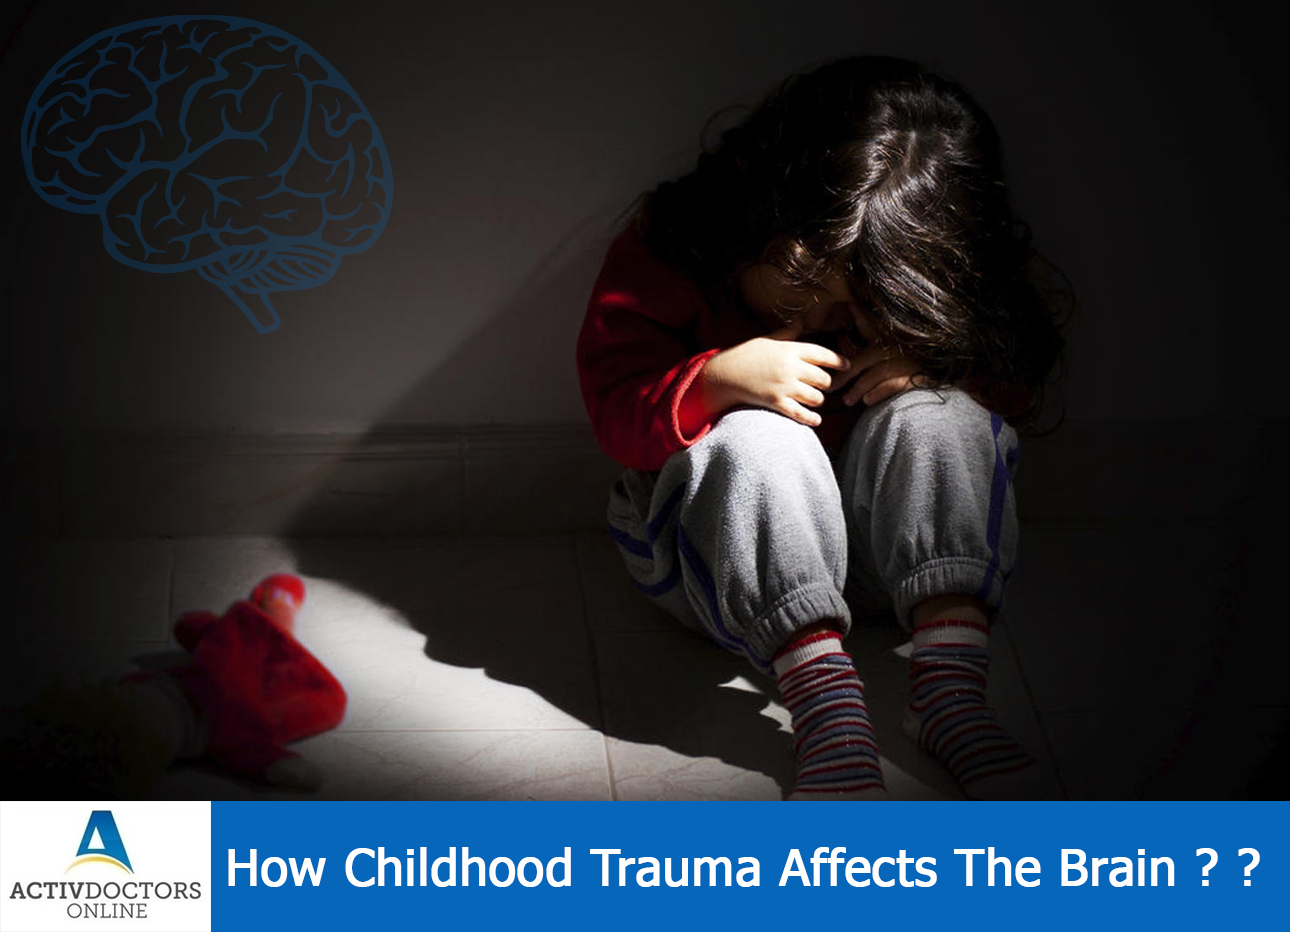 How Childhood Trauma Affects The Brain